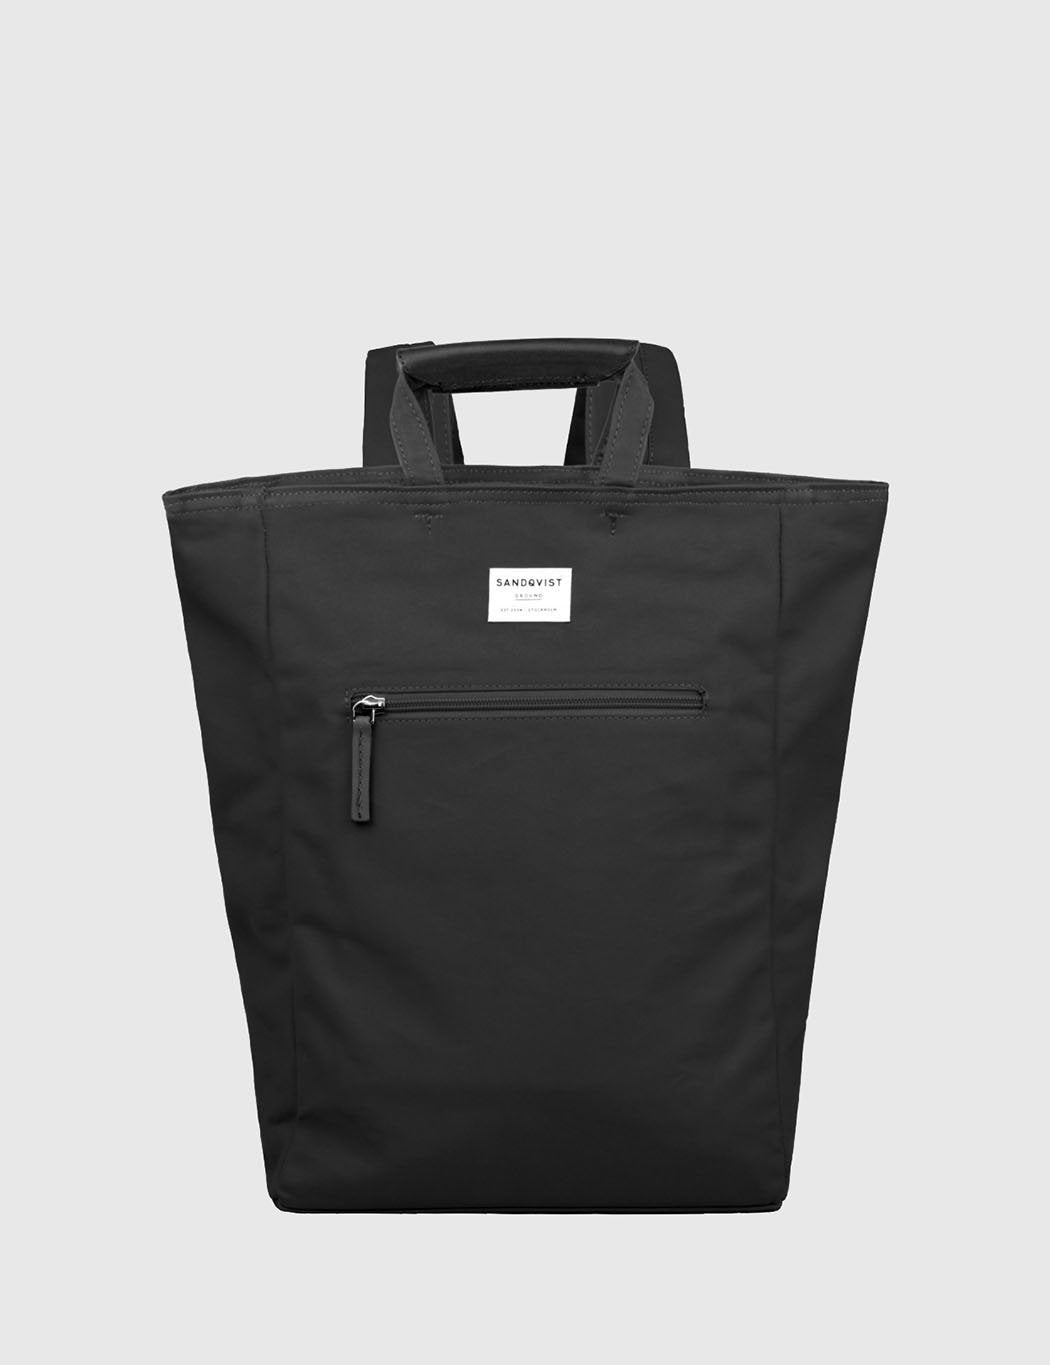 Sandqvist Tony Tote Bag (Canvas) - Black